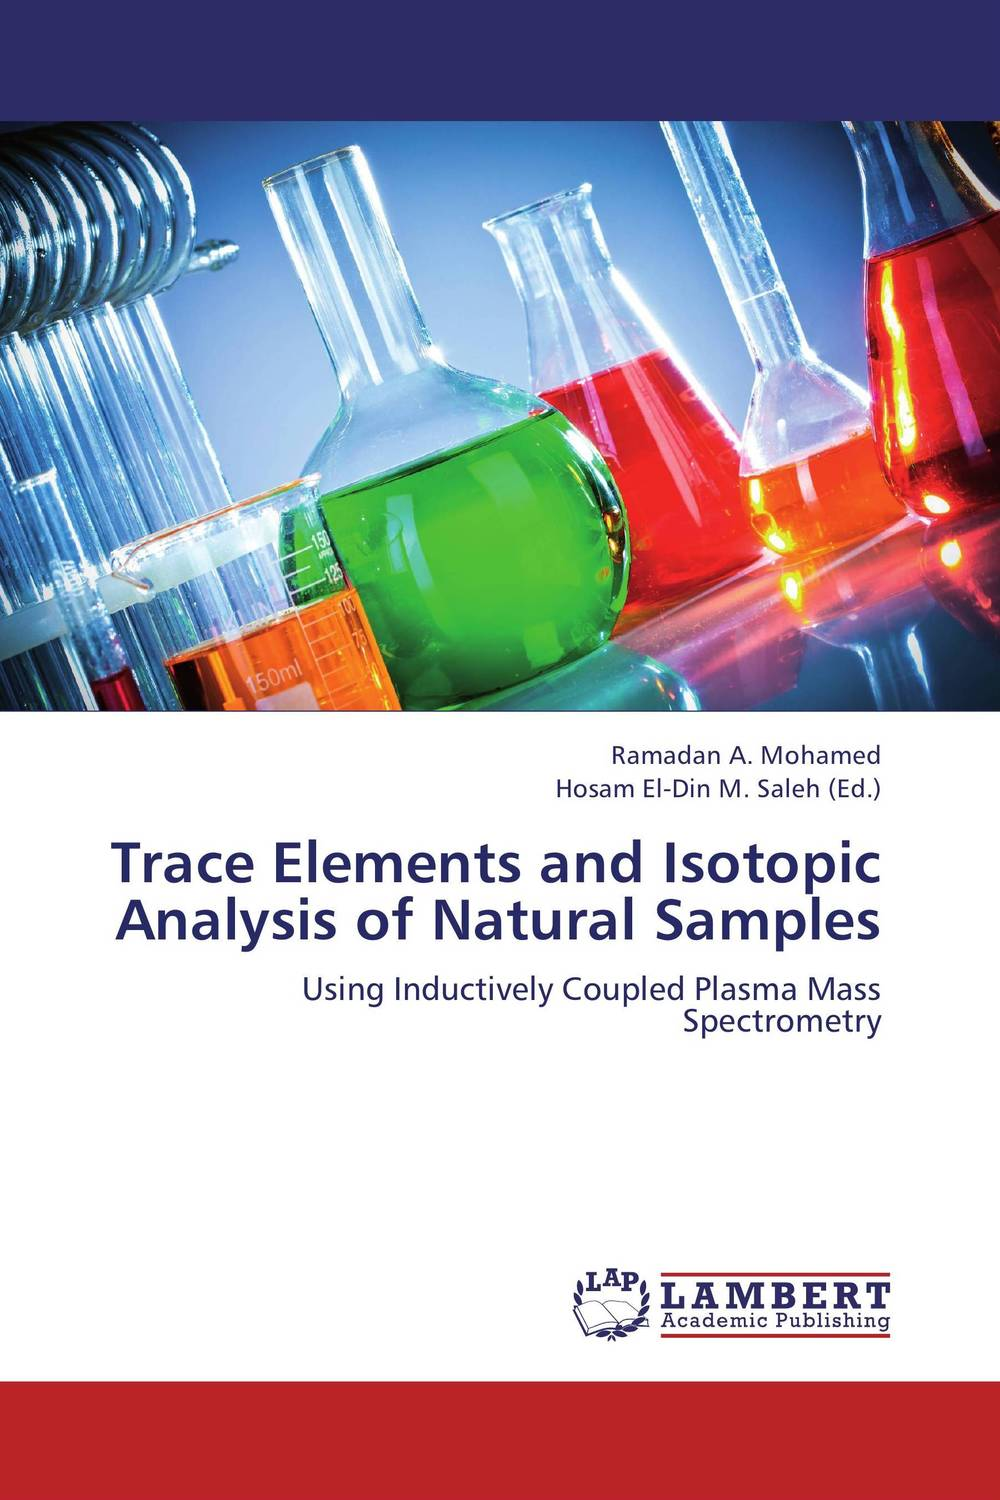 Trace Elements and Isotopic Analysis of Natural Samples